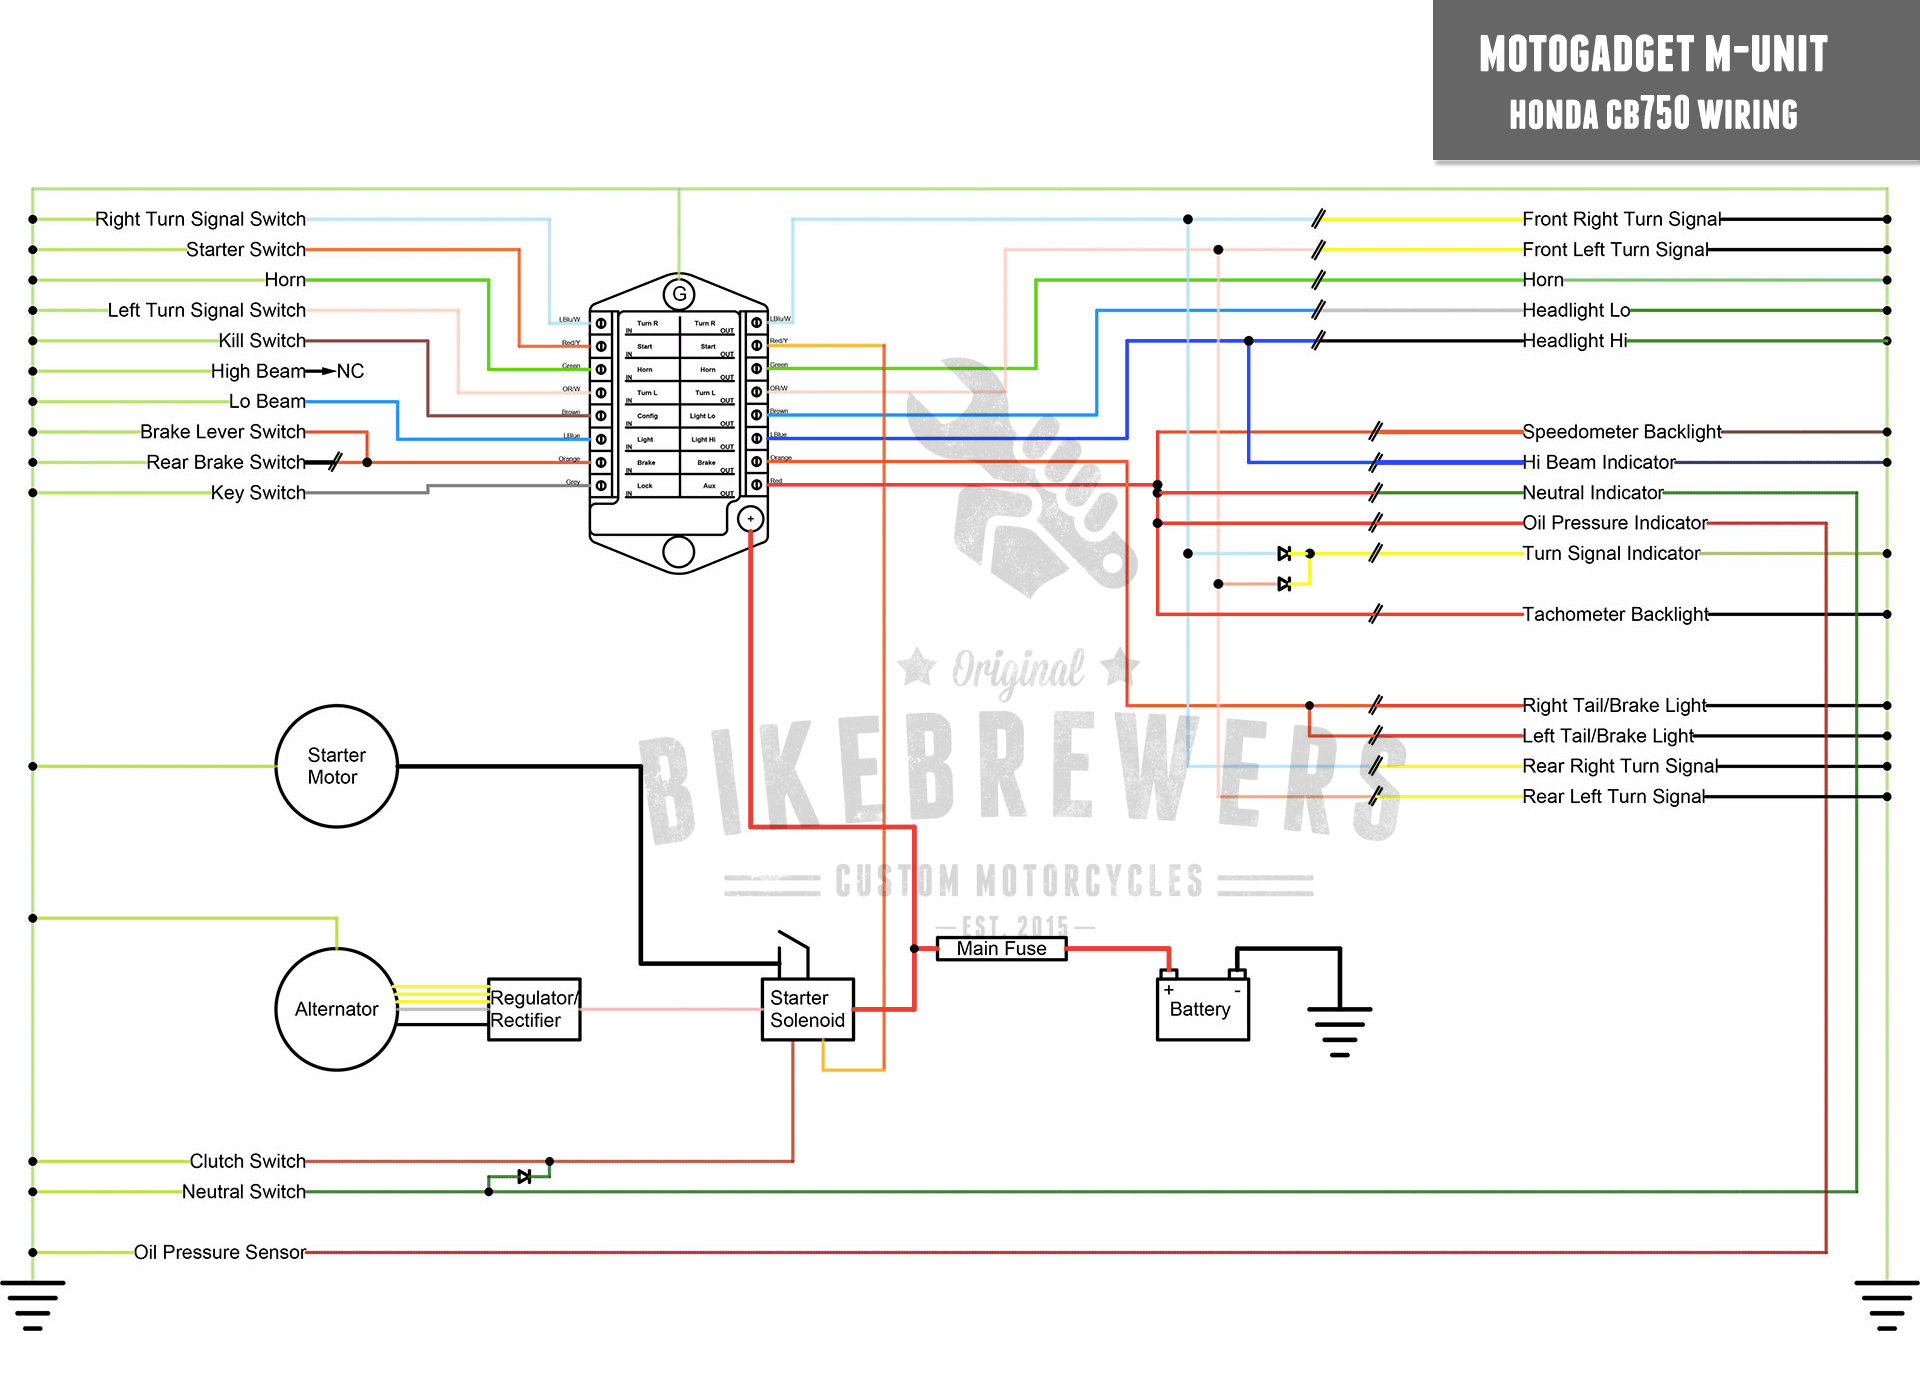 7789 harley davidson neutral switch wiring diagram | wiring resources  wiring resources